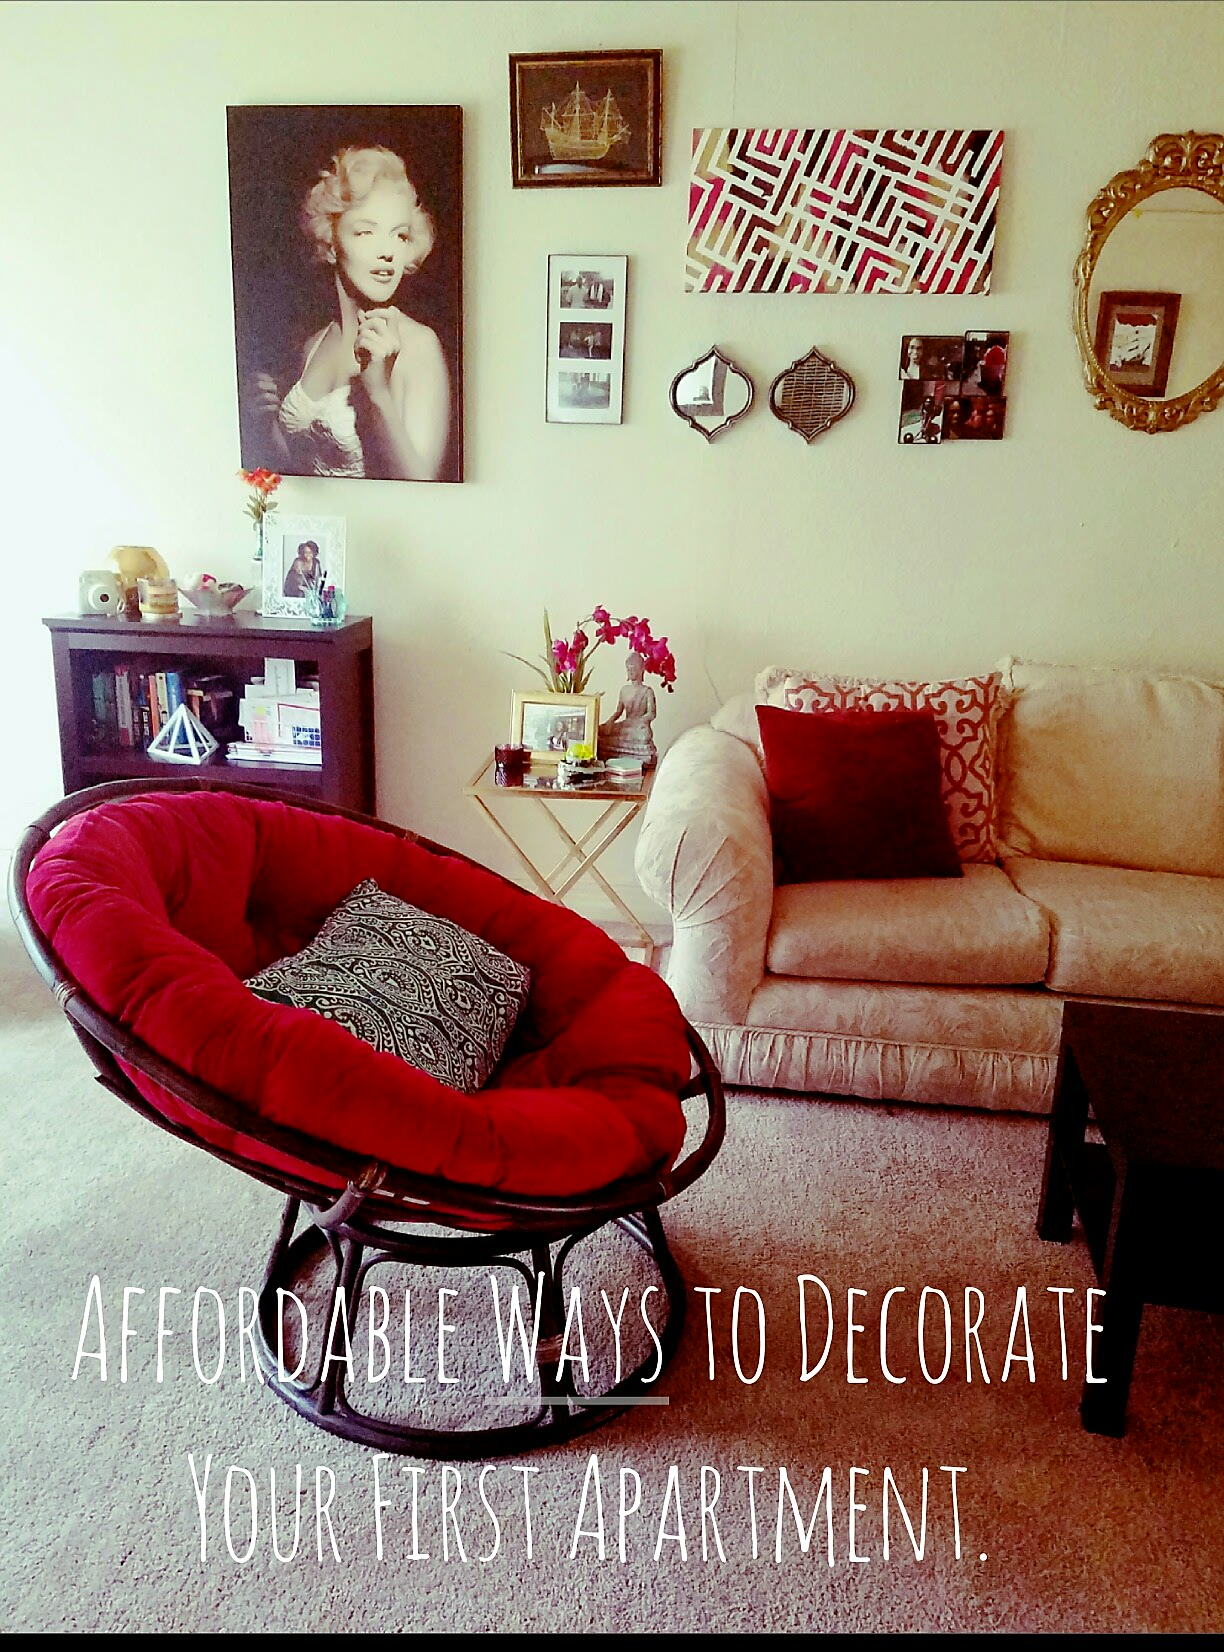 Affordable Ways To Decorate Your First Apartment